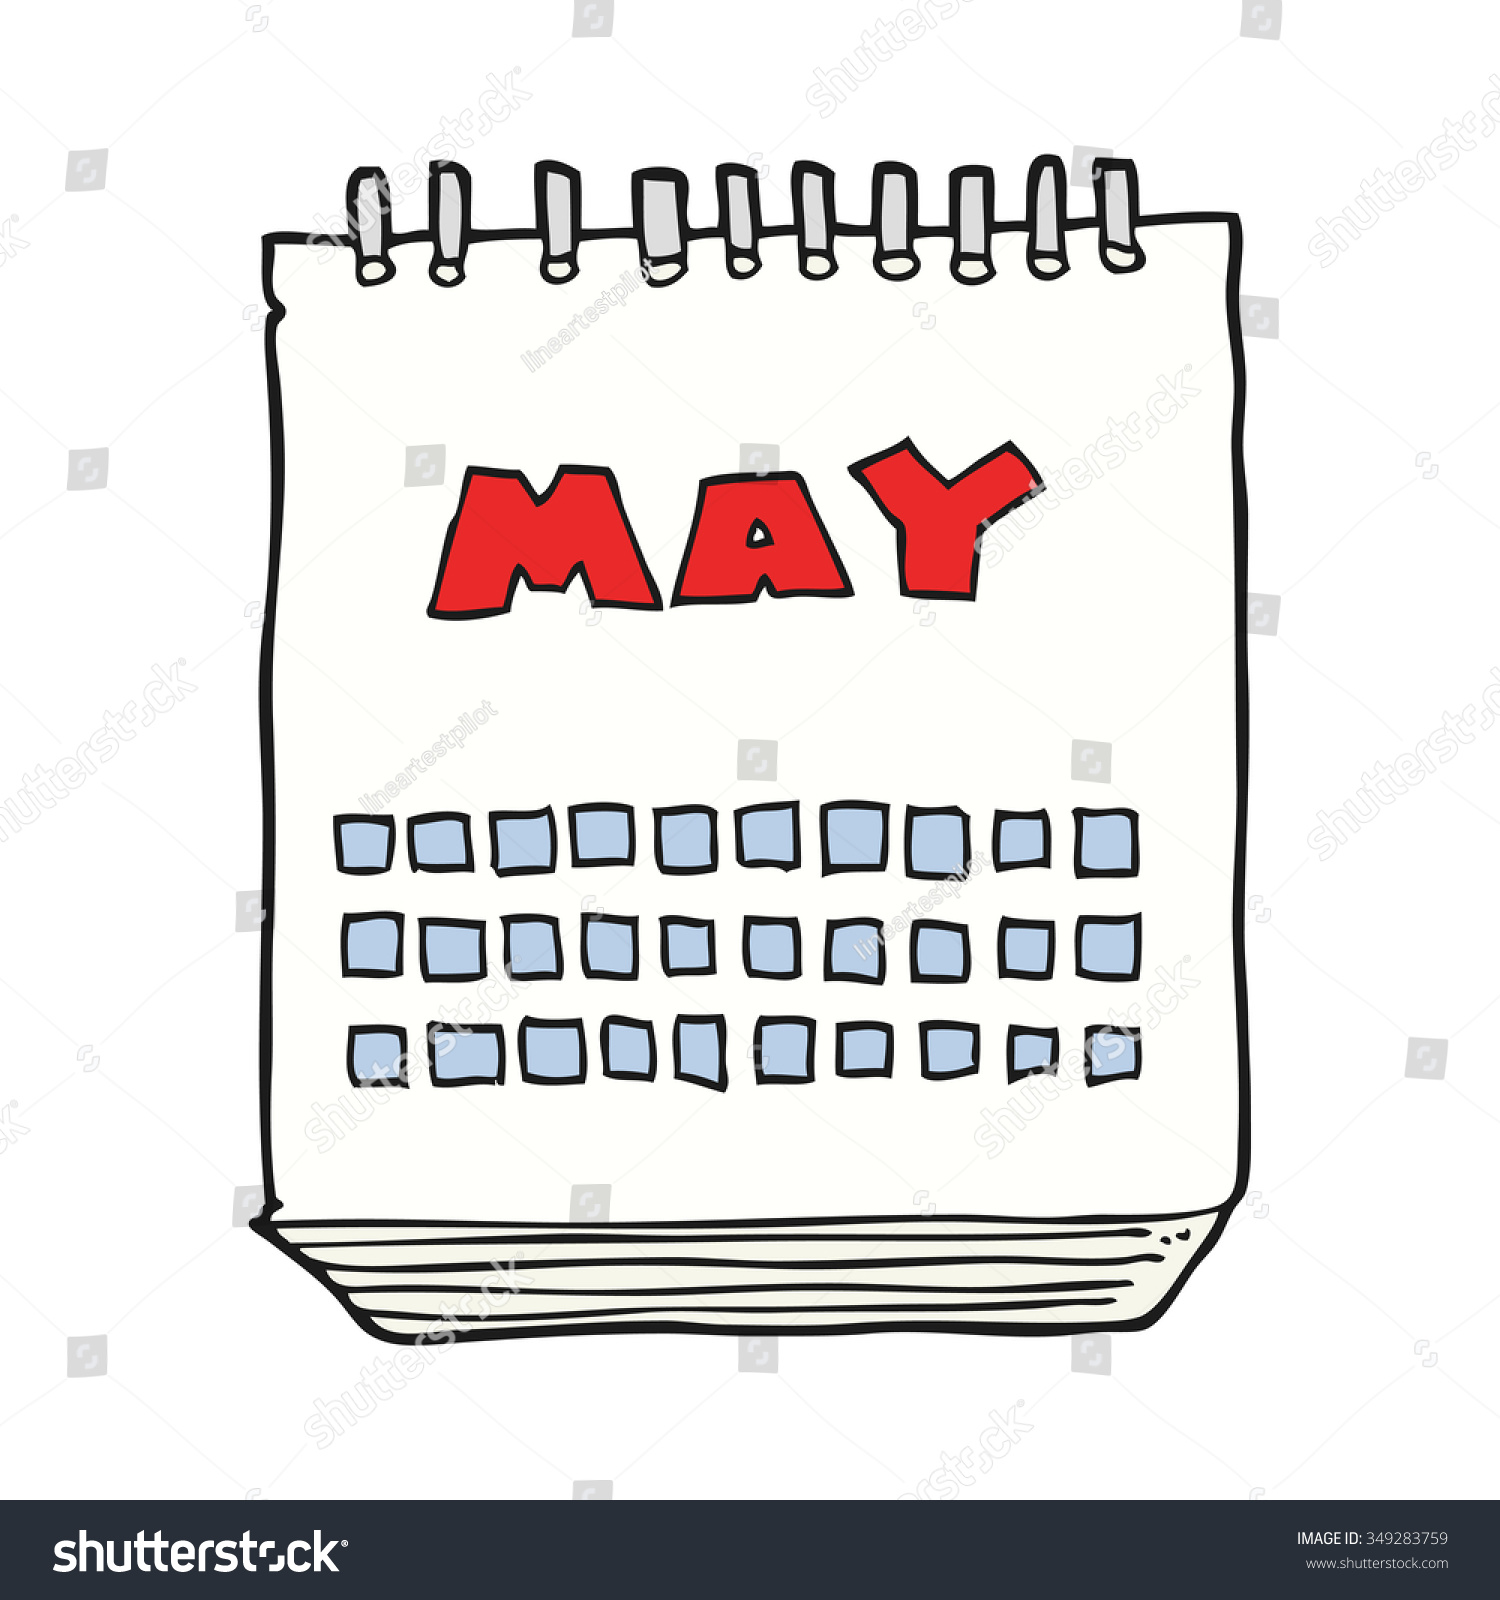 Calendar Showing May : Freehand drawn cartoon calendar showing month stock vector